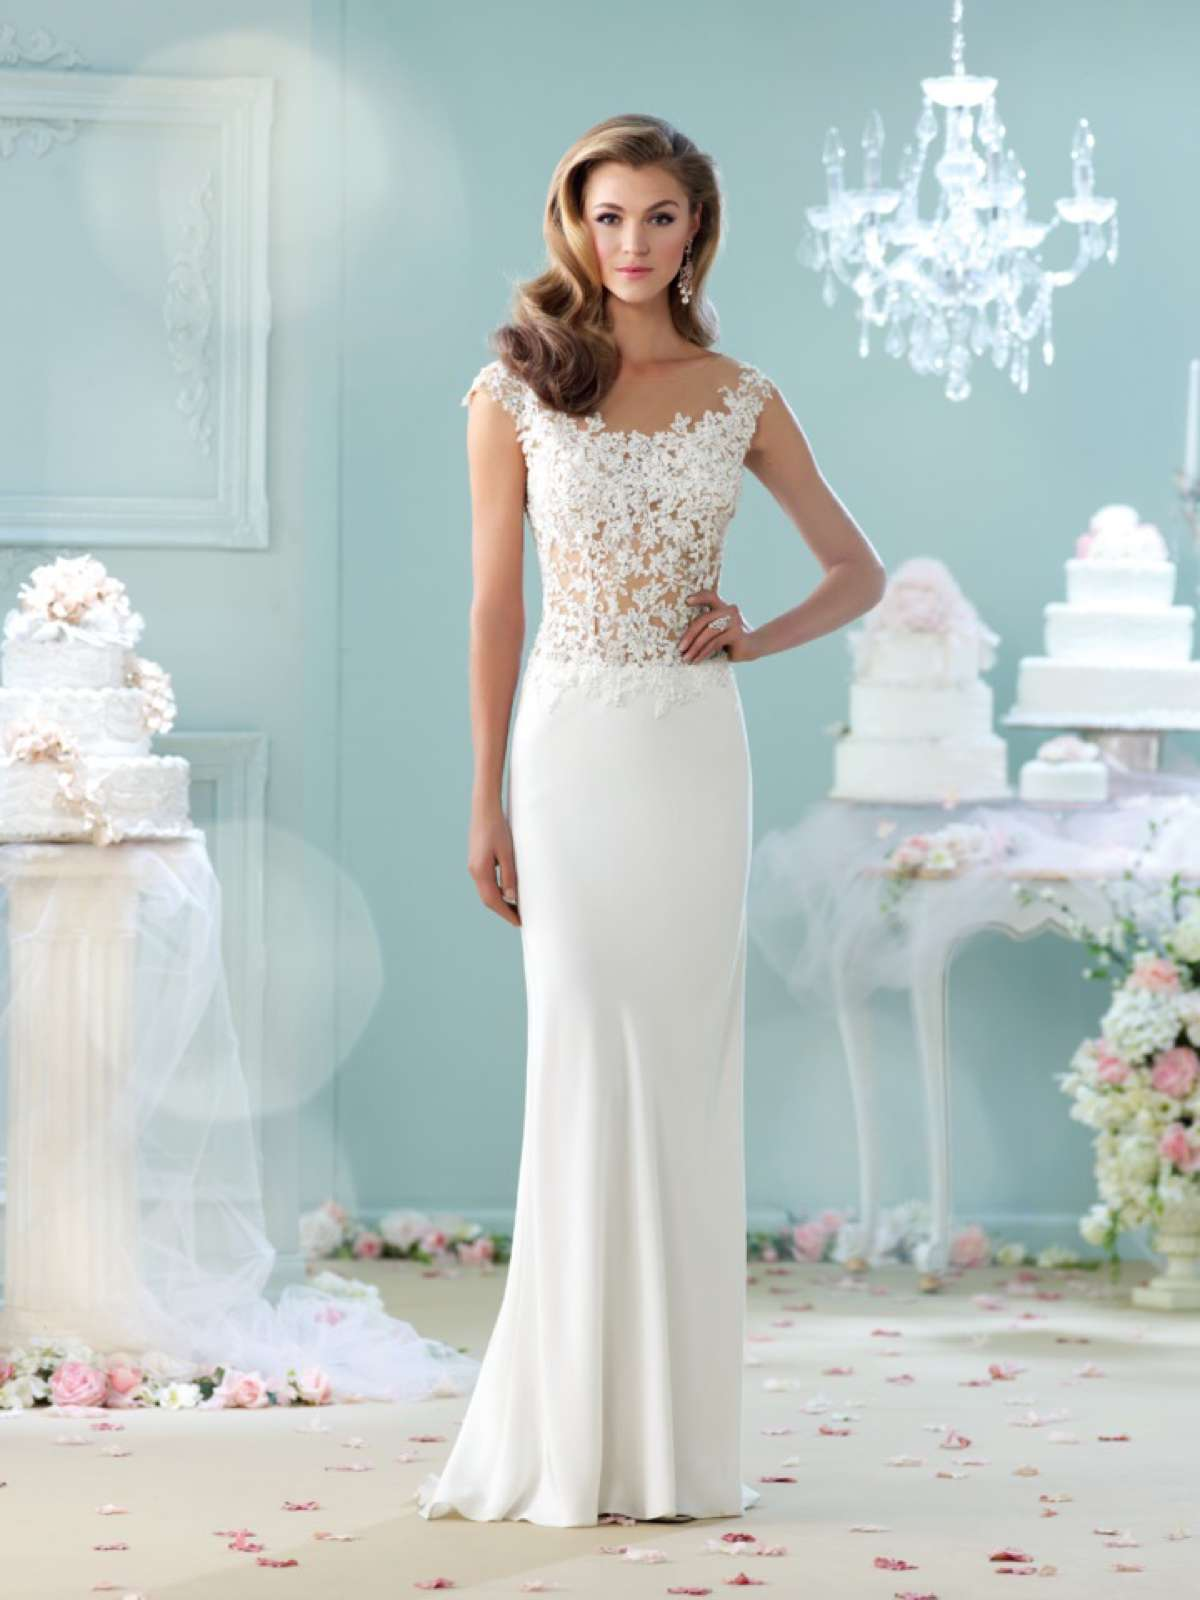 Fancy Wedding Dresses For Renewing Vows Pictures - All Wedding ...